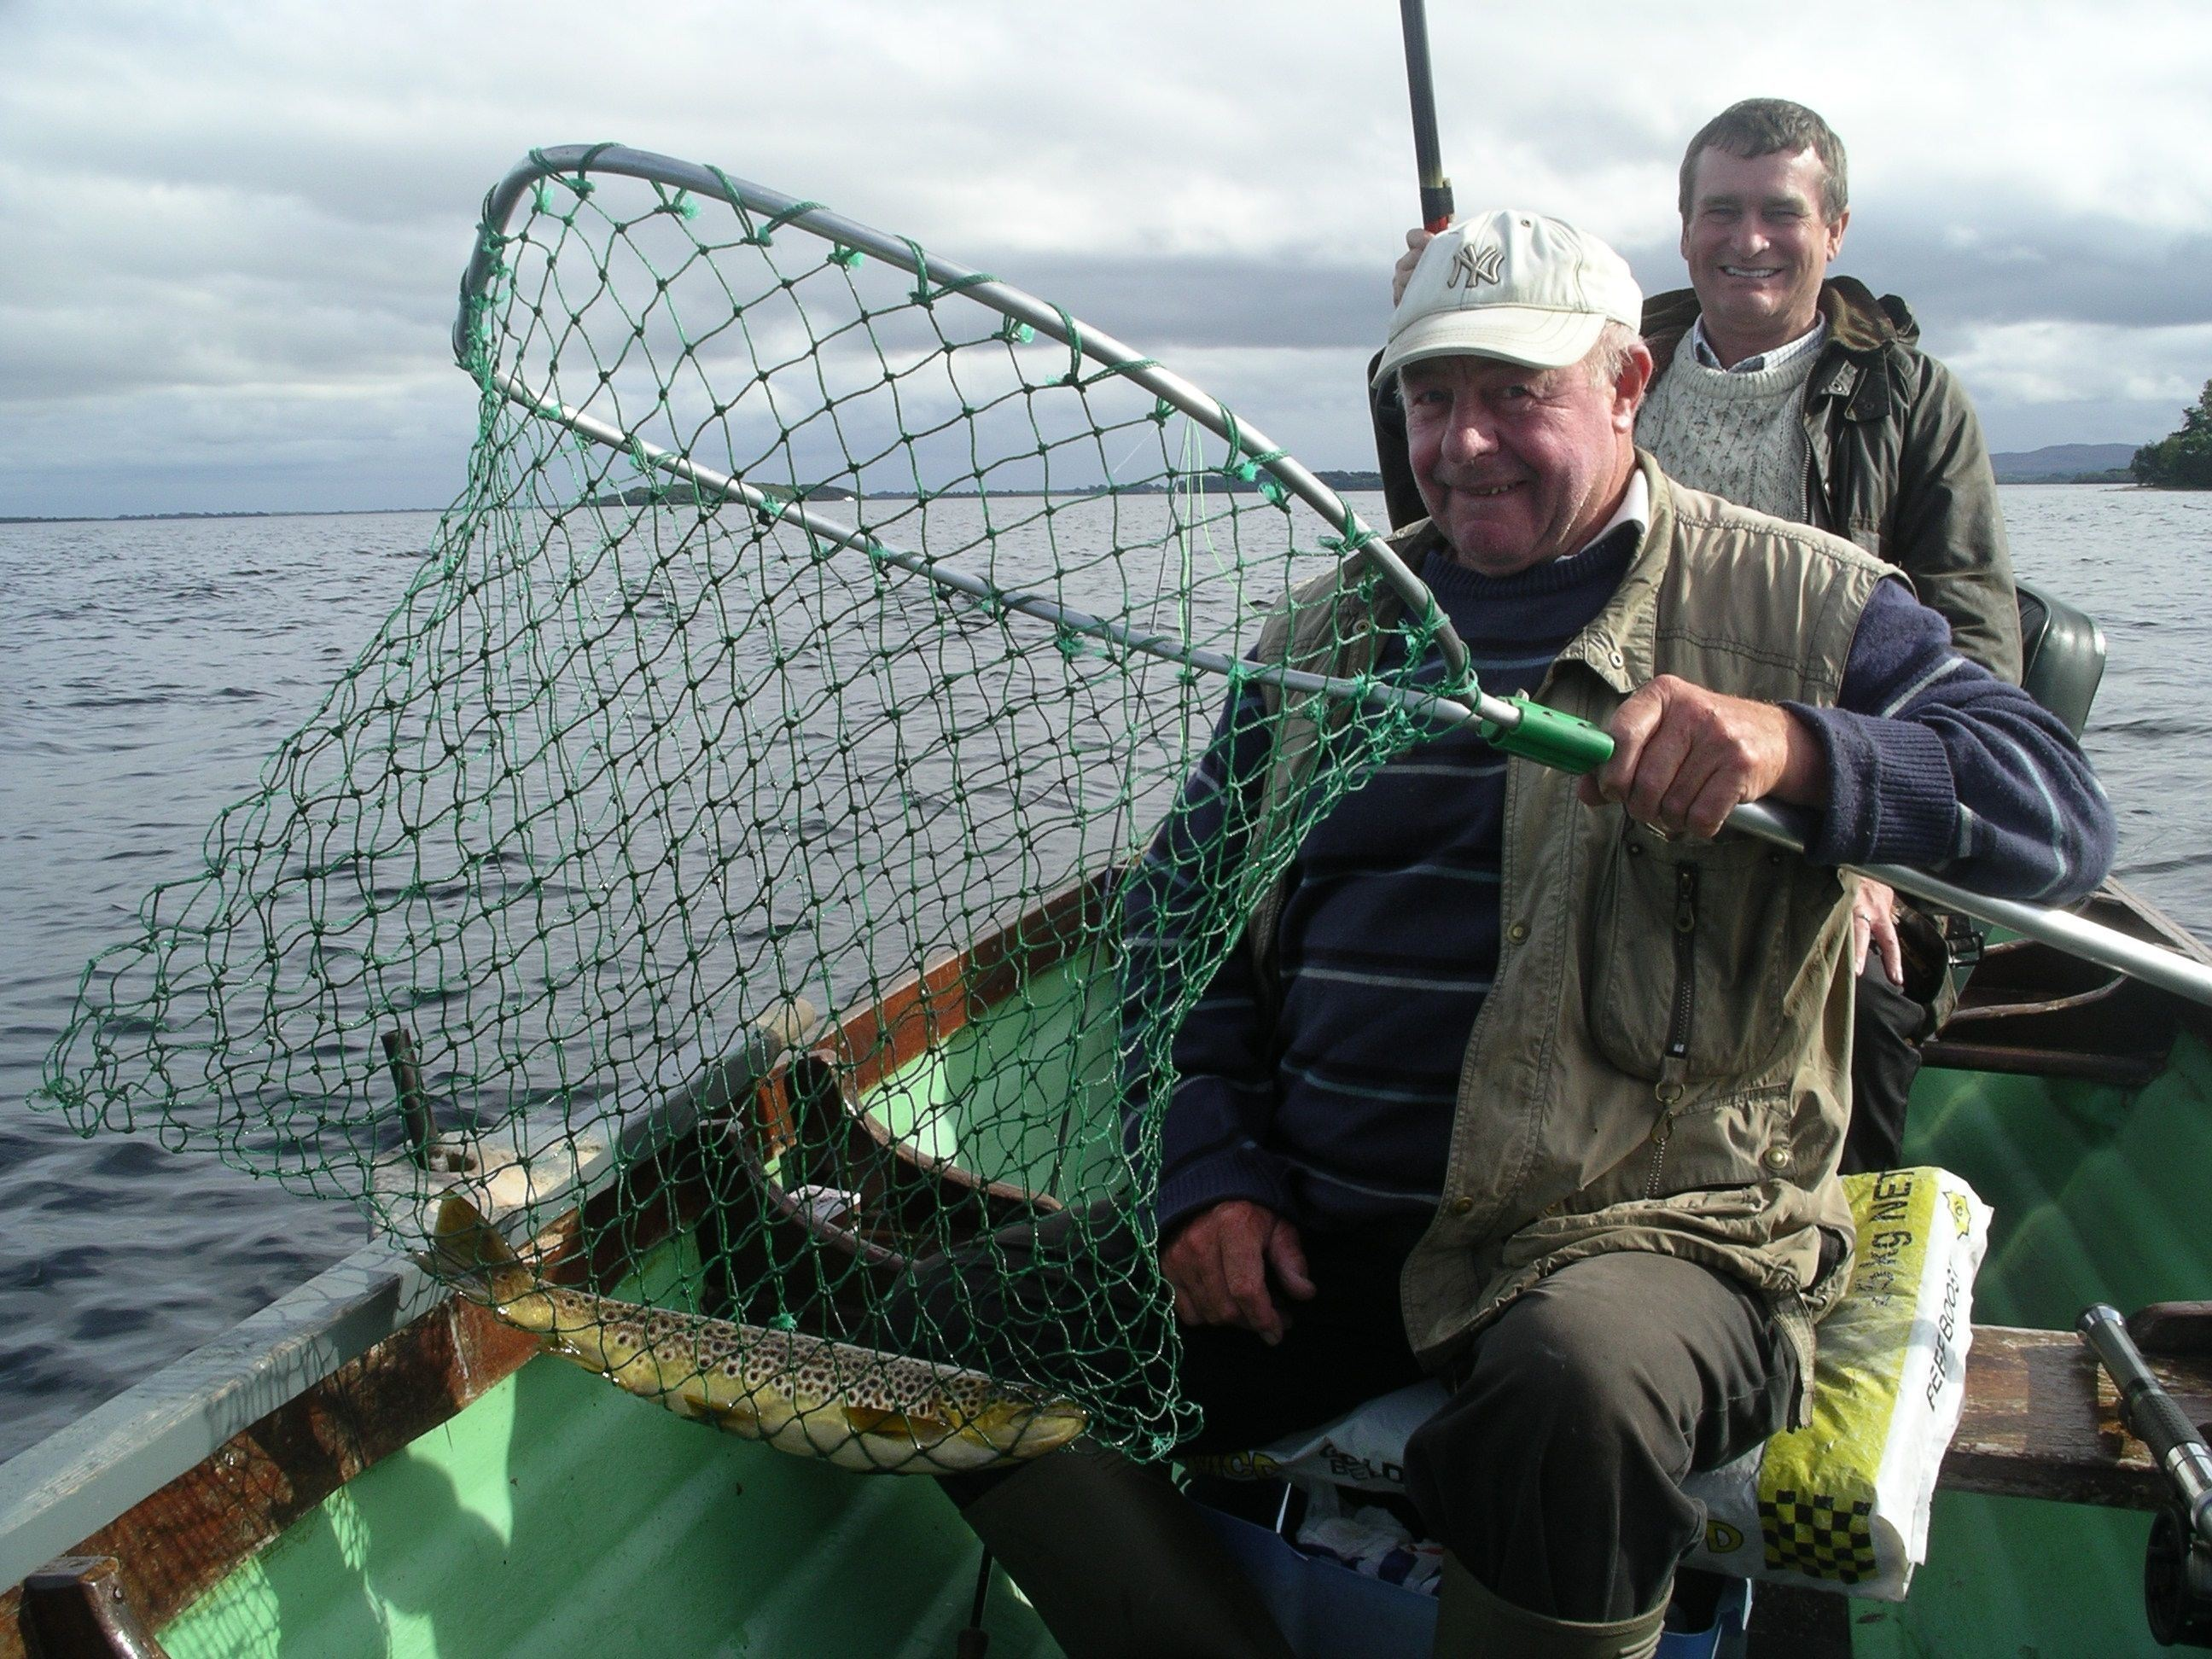 Ten of the Best Fishing Hotels in Ireland - Fishing Holidays